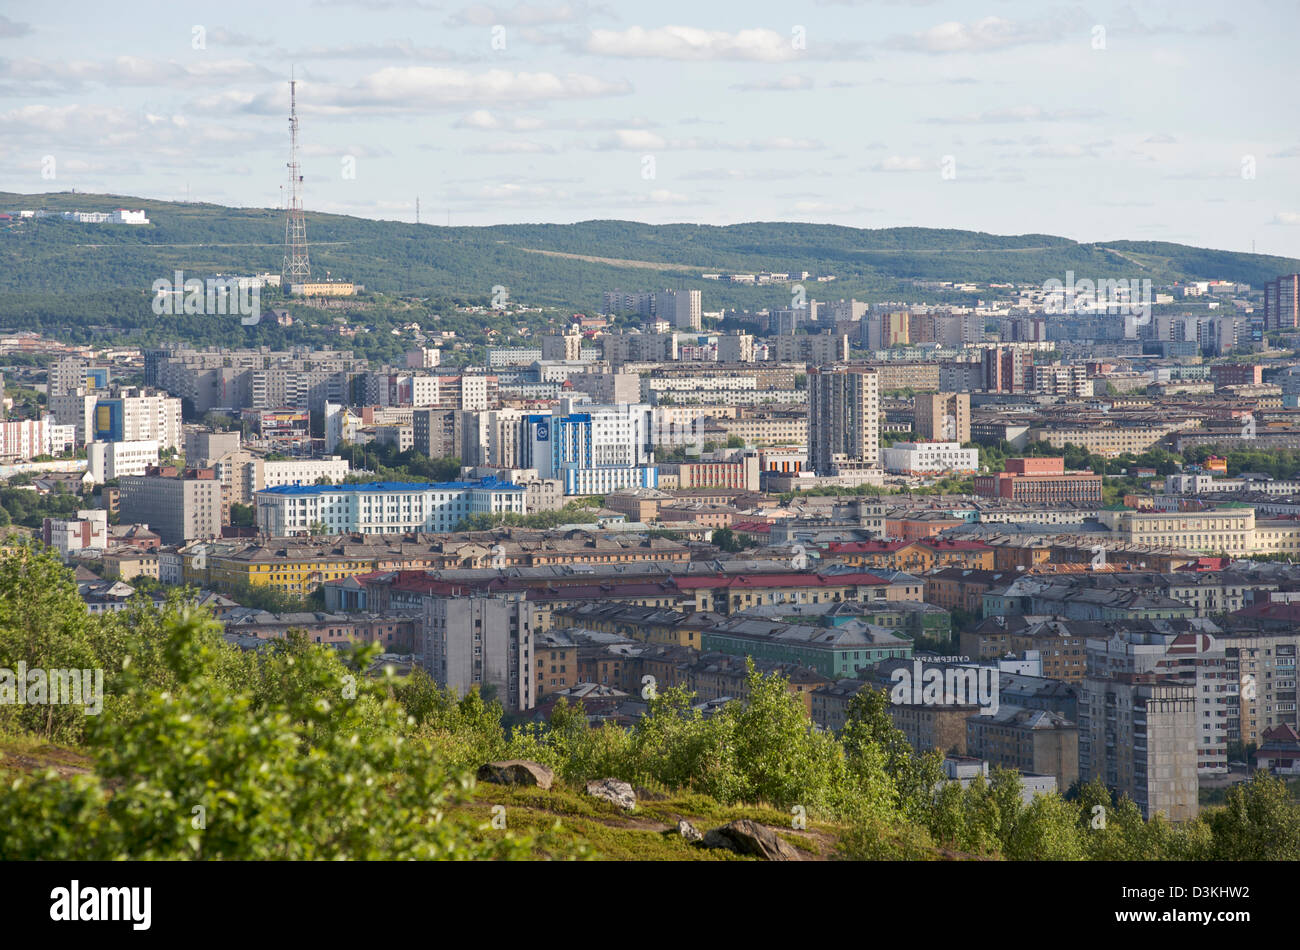 View overlooking the Russian city of Murmansk - Stock Image